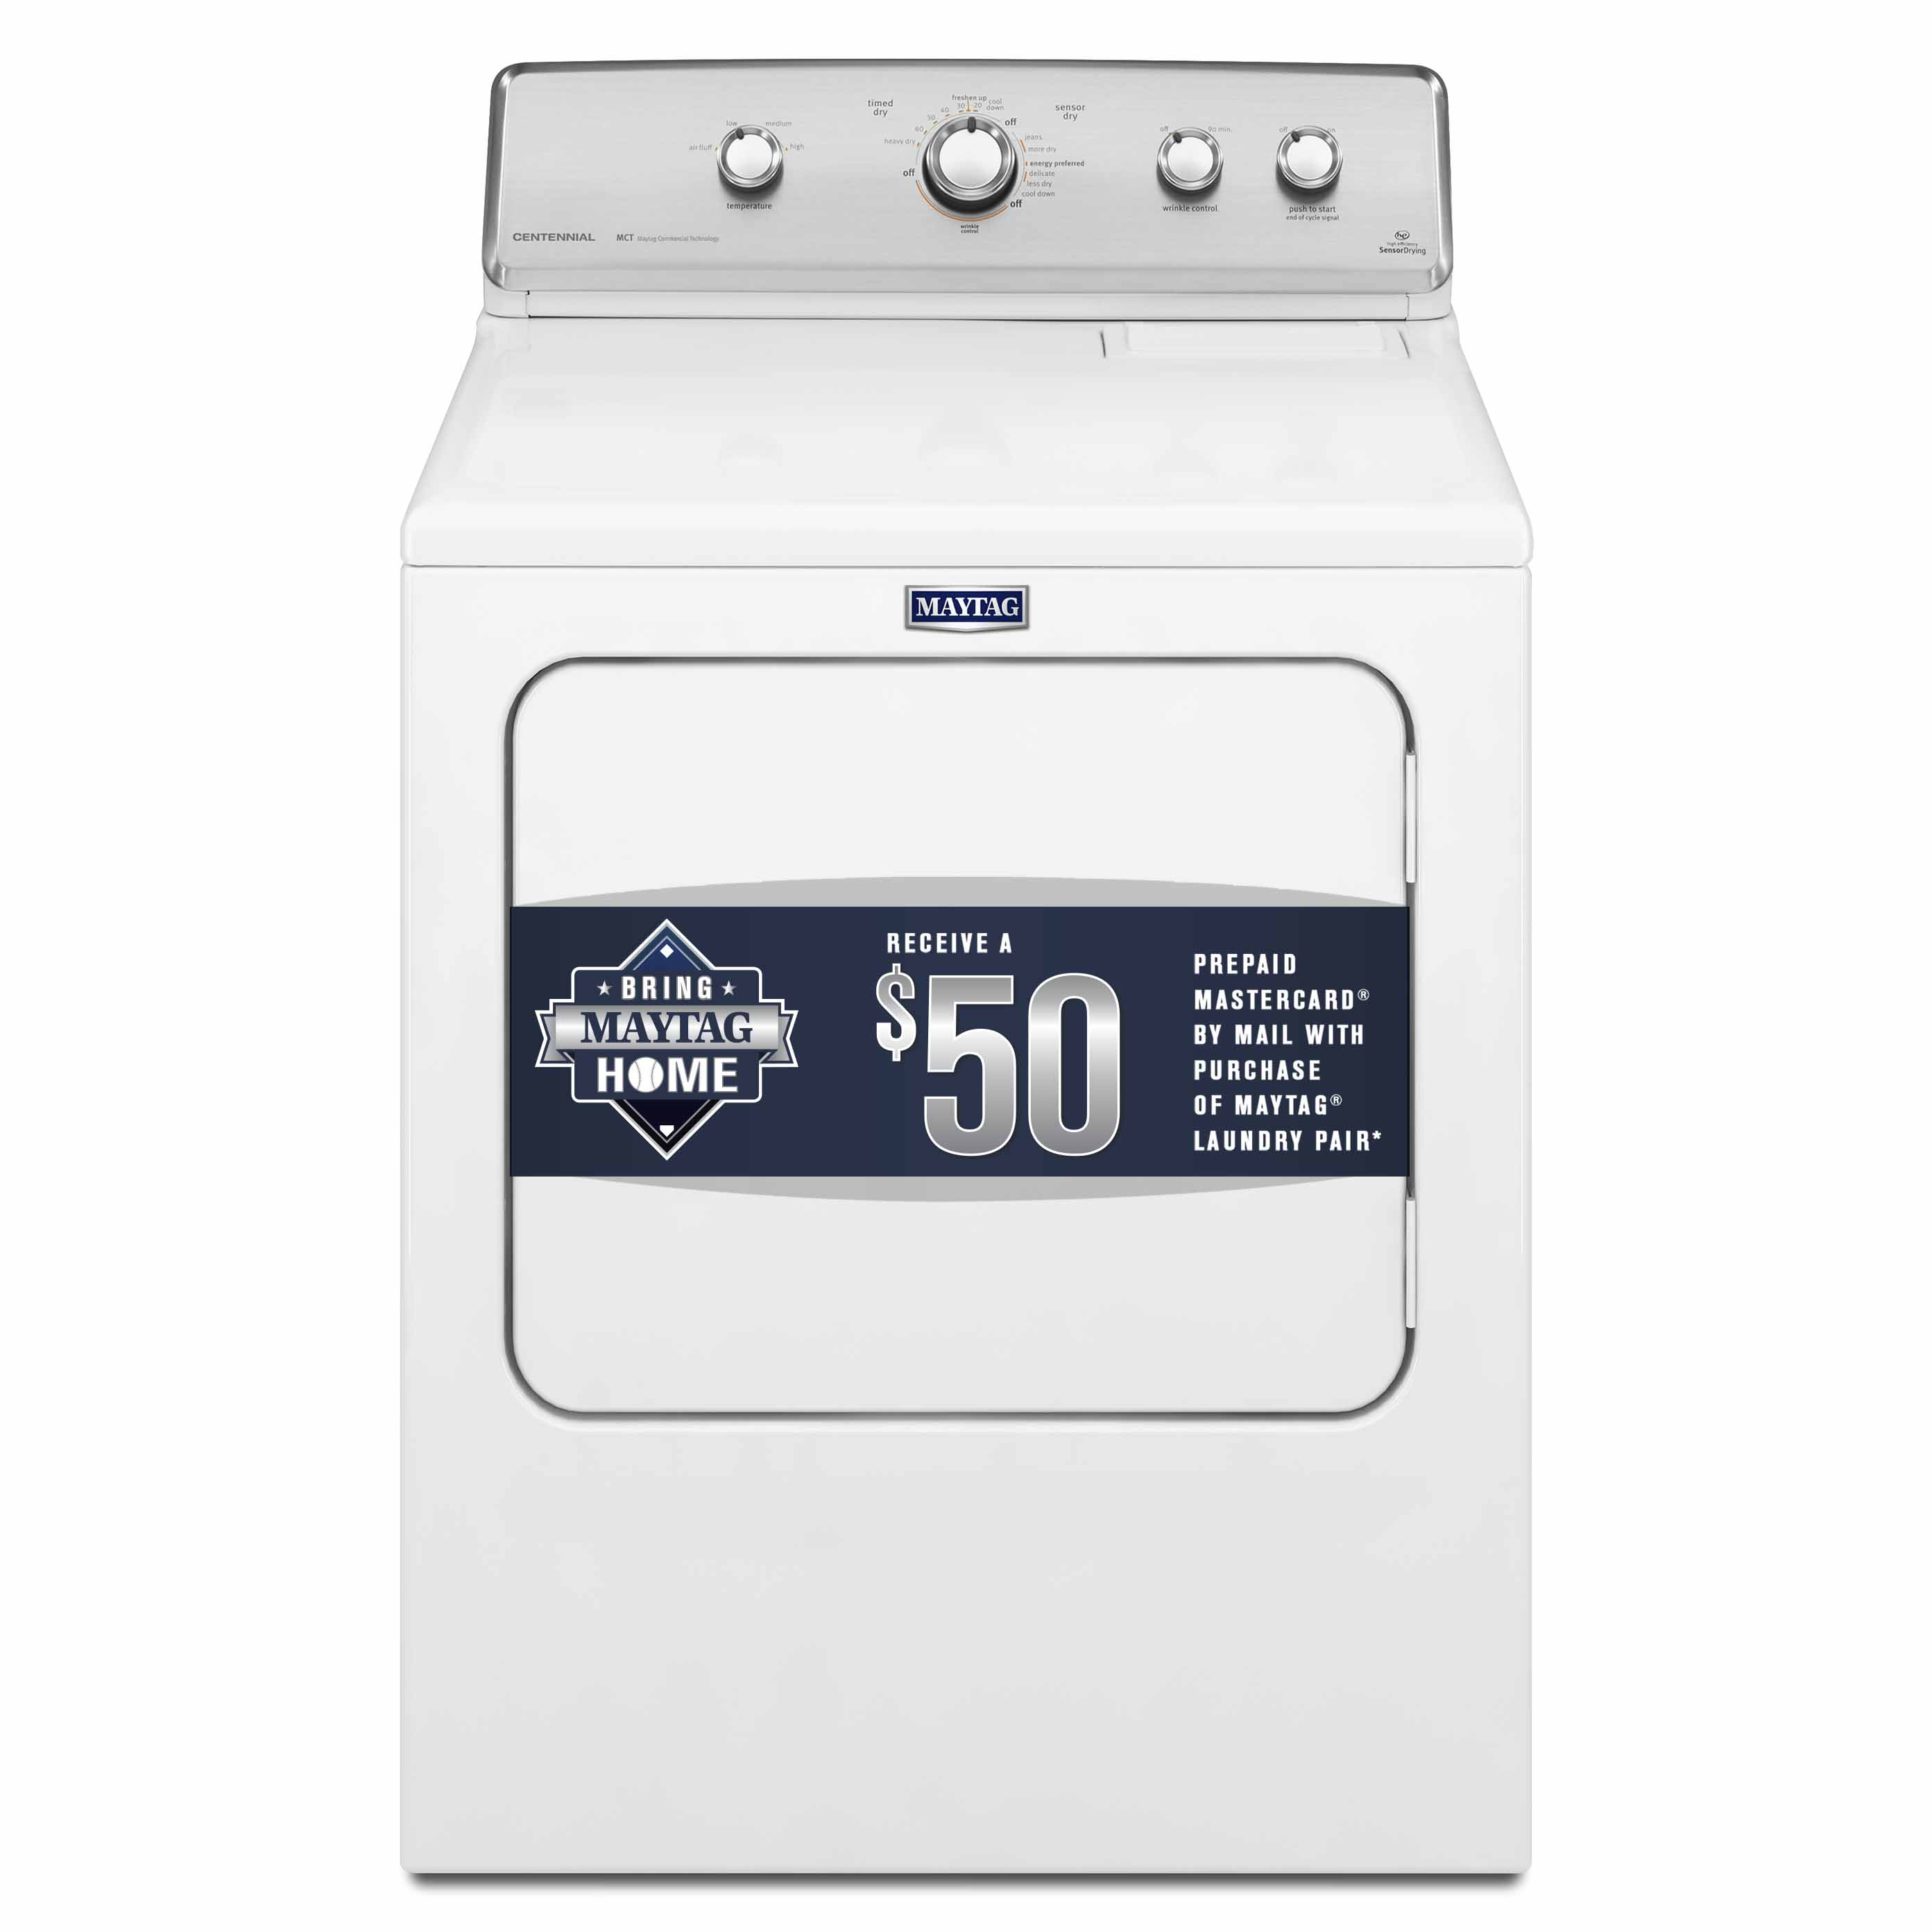 Maytag 7.0 cu. ft. Centennial® Electric Dryer - White